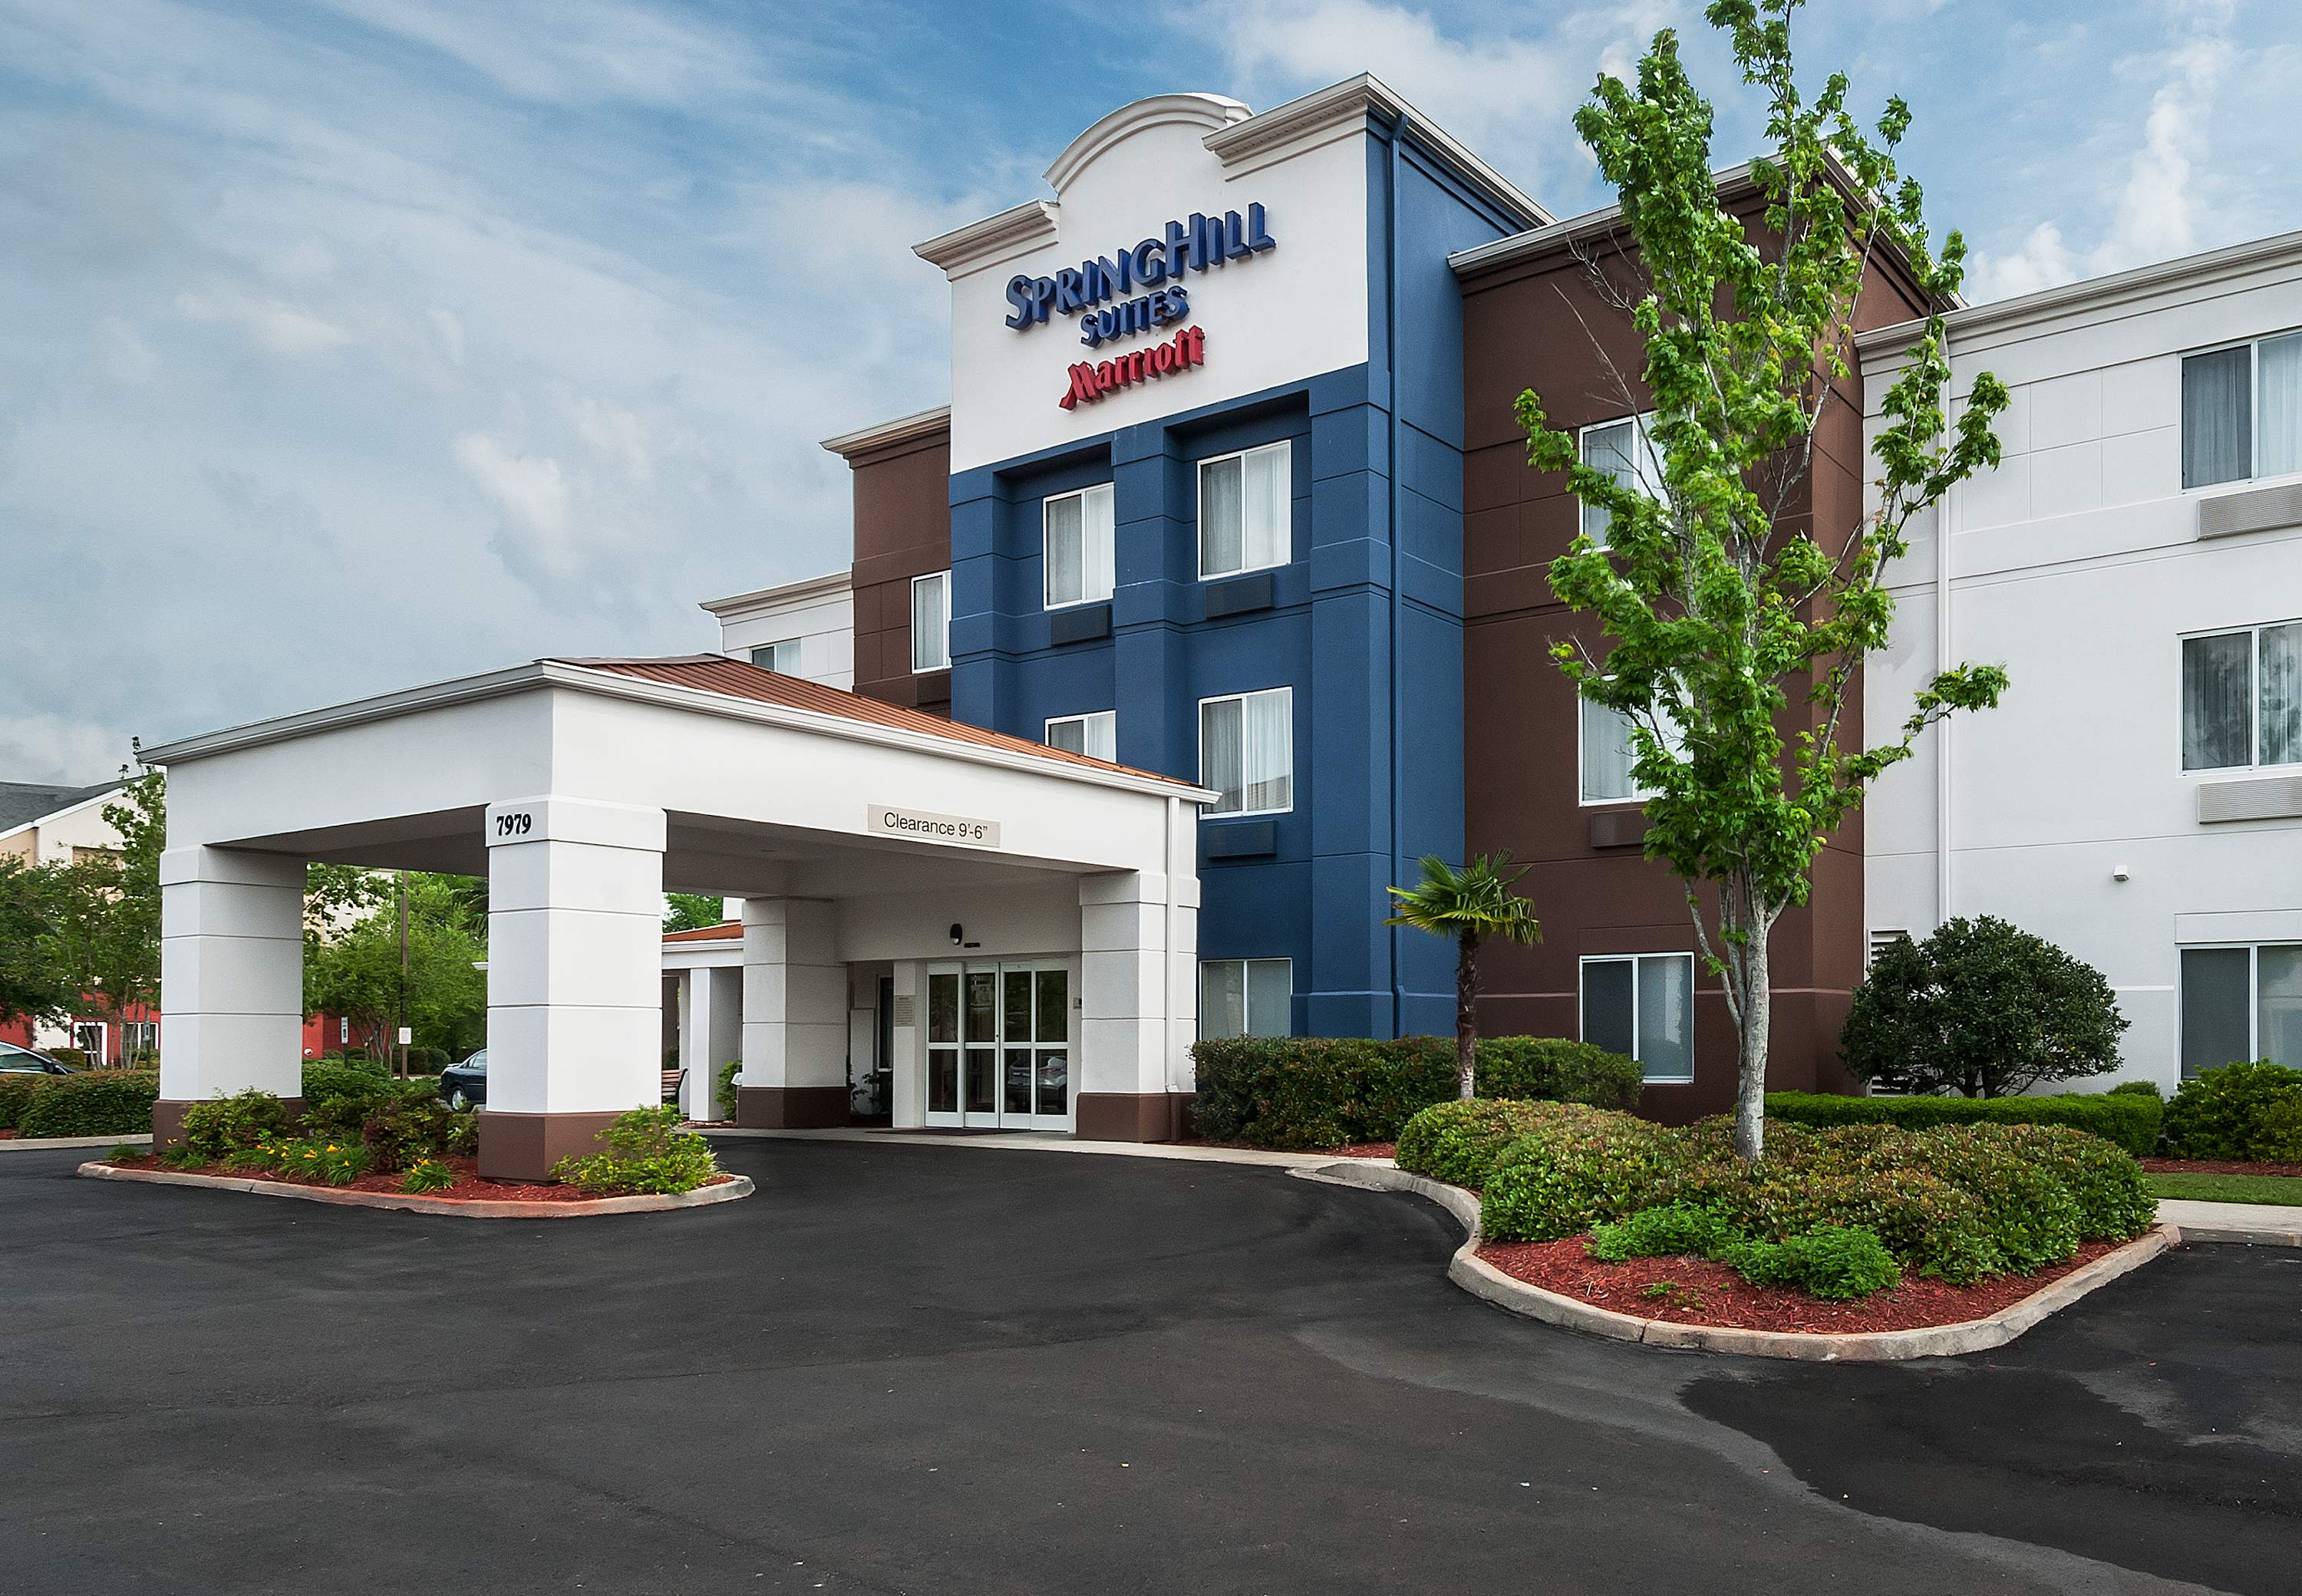 SpringHill Suites by Marriott Baton Rouge South image 0